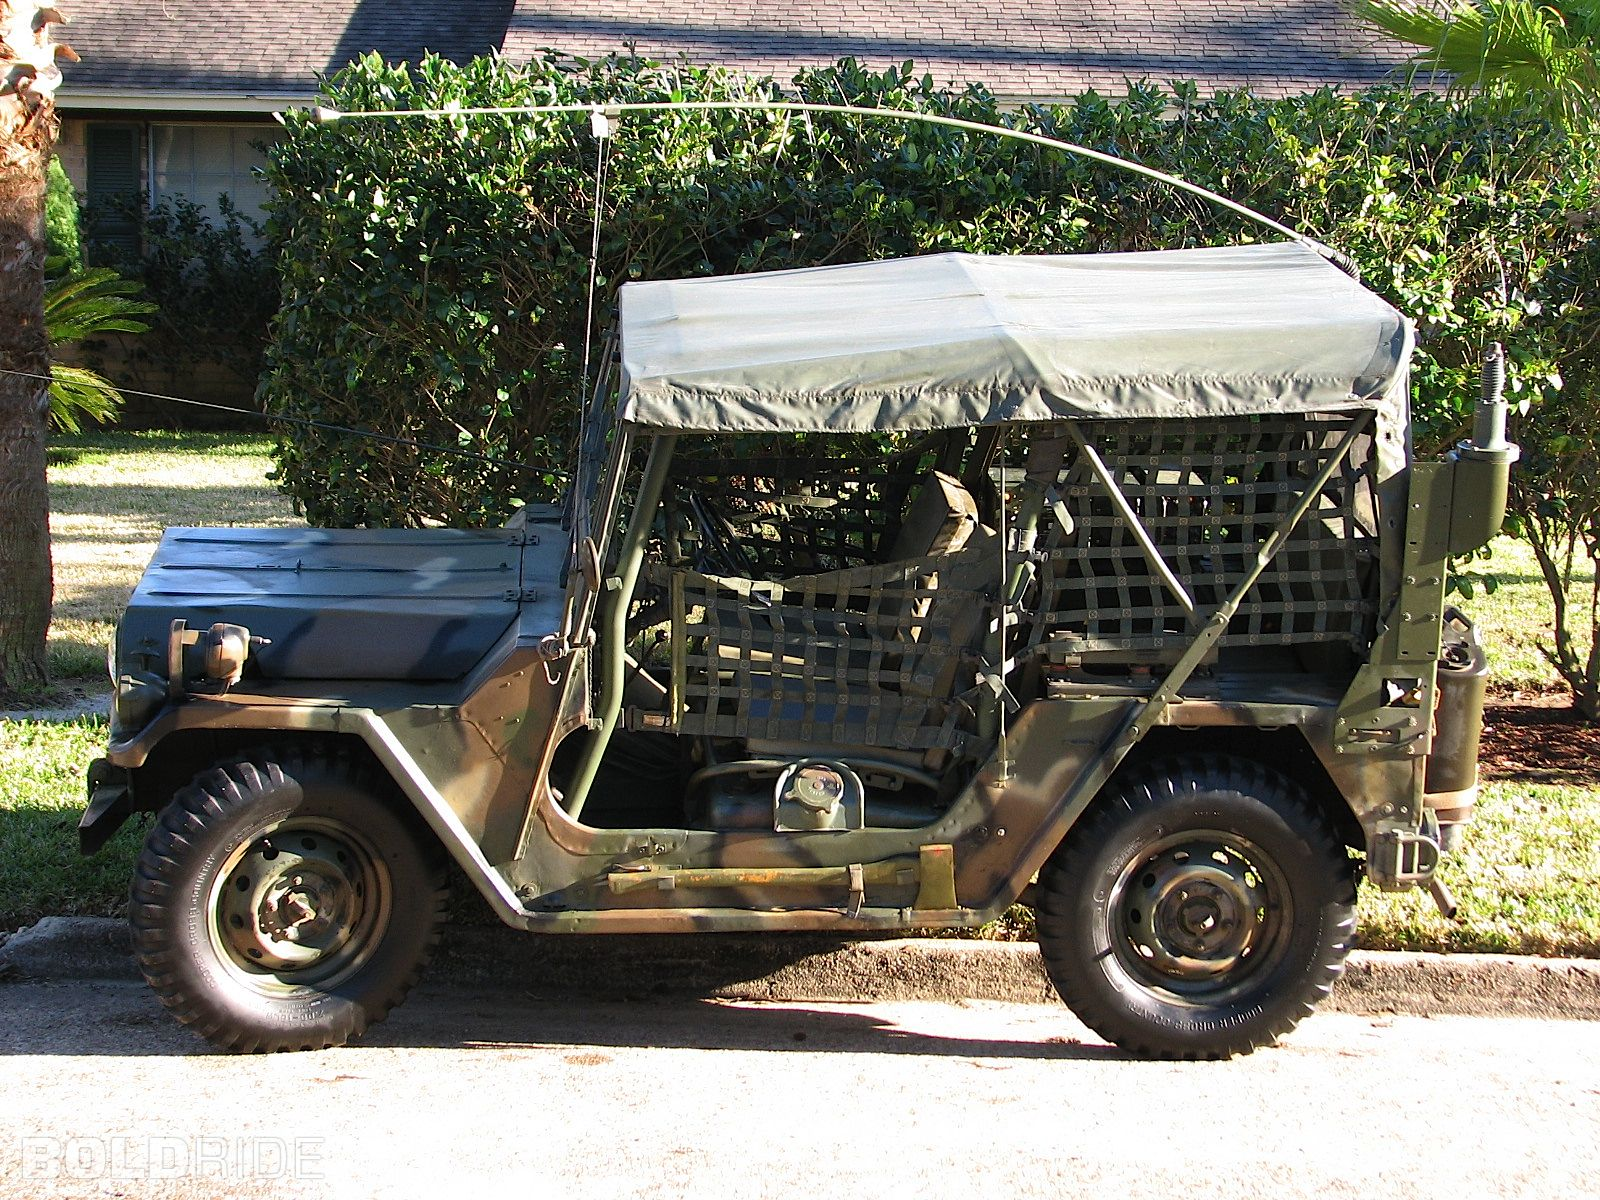 1970 ford m151 a2 mutt military jeep offroad 4x4